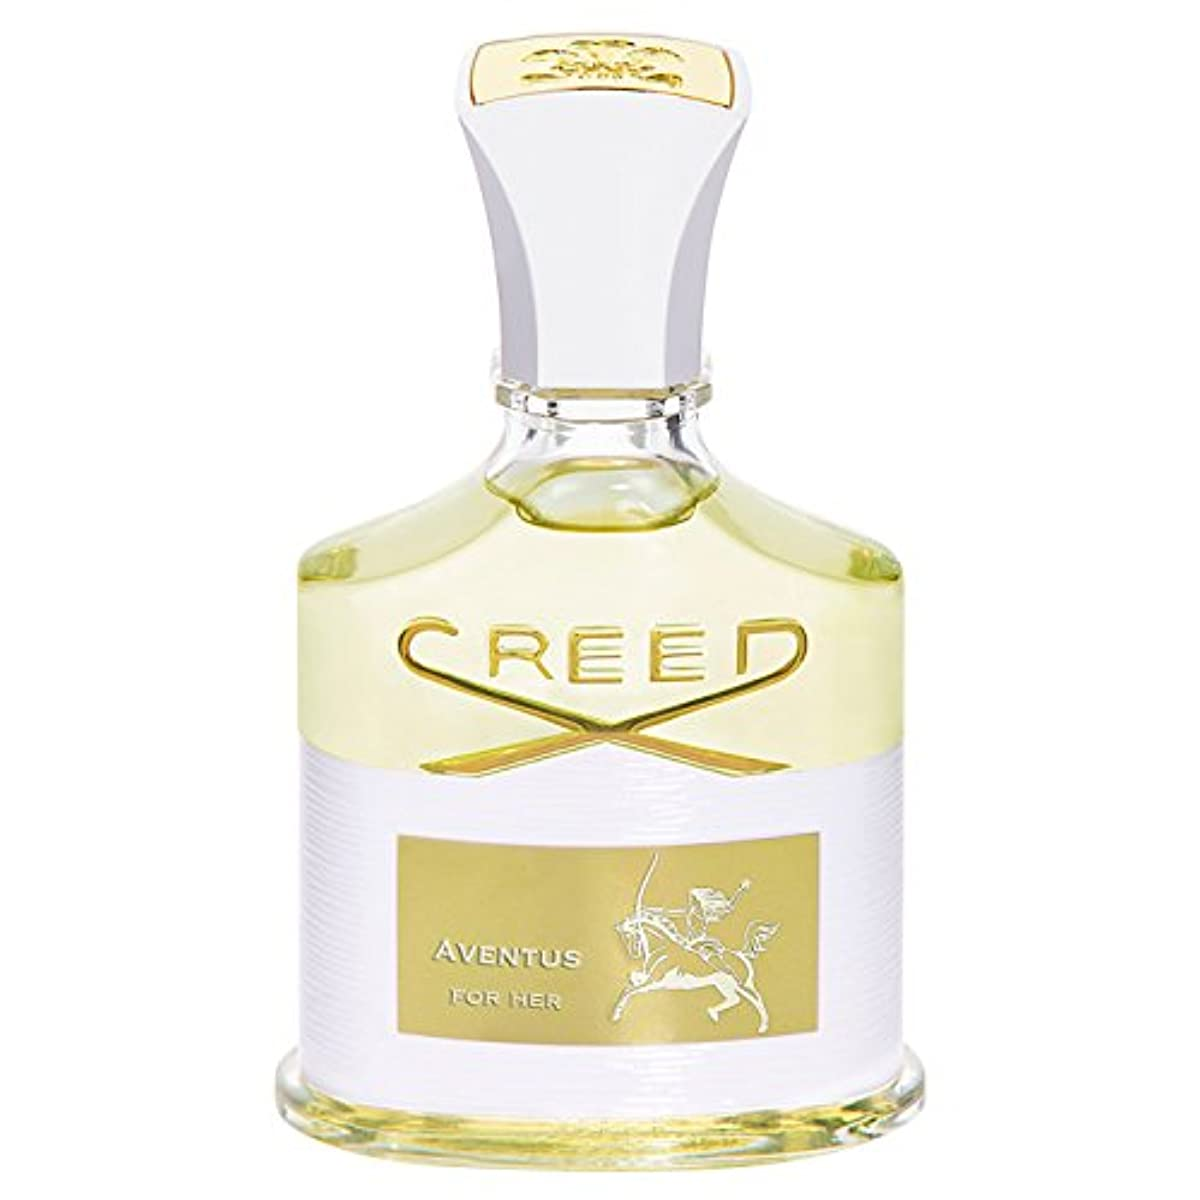 Creed Aventus for Her (クリード アベンタス フォー ハー) 2.5 oz (75ml) Spray